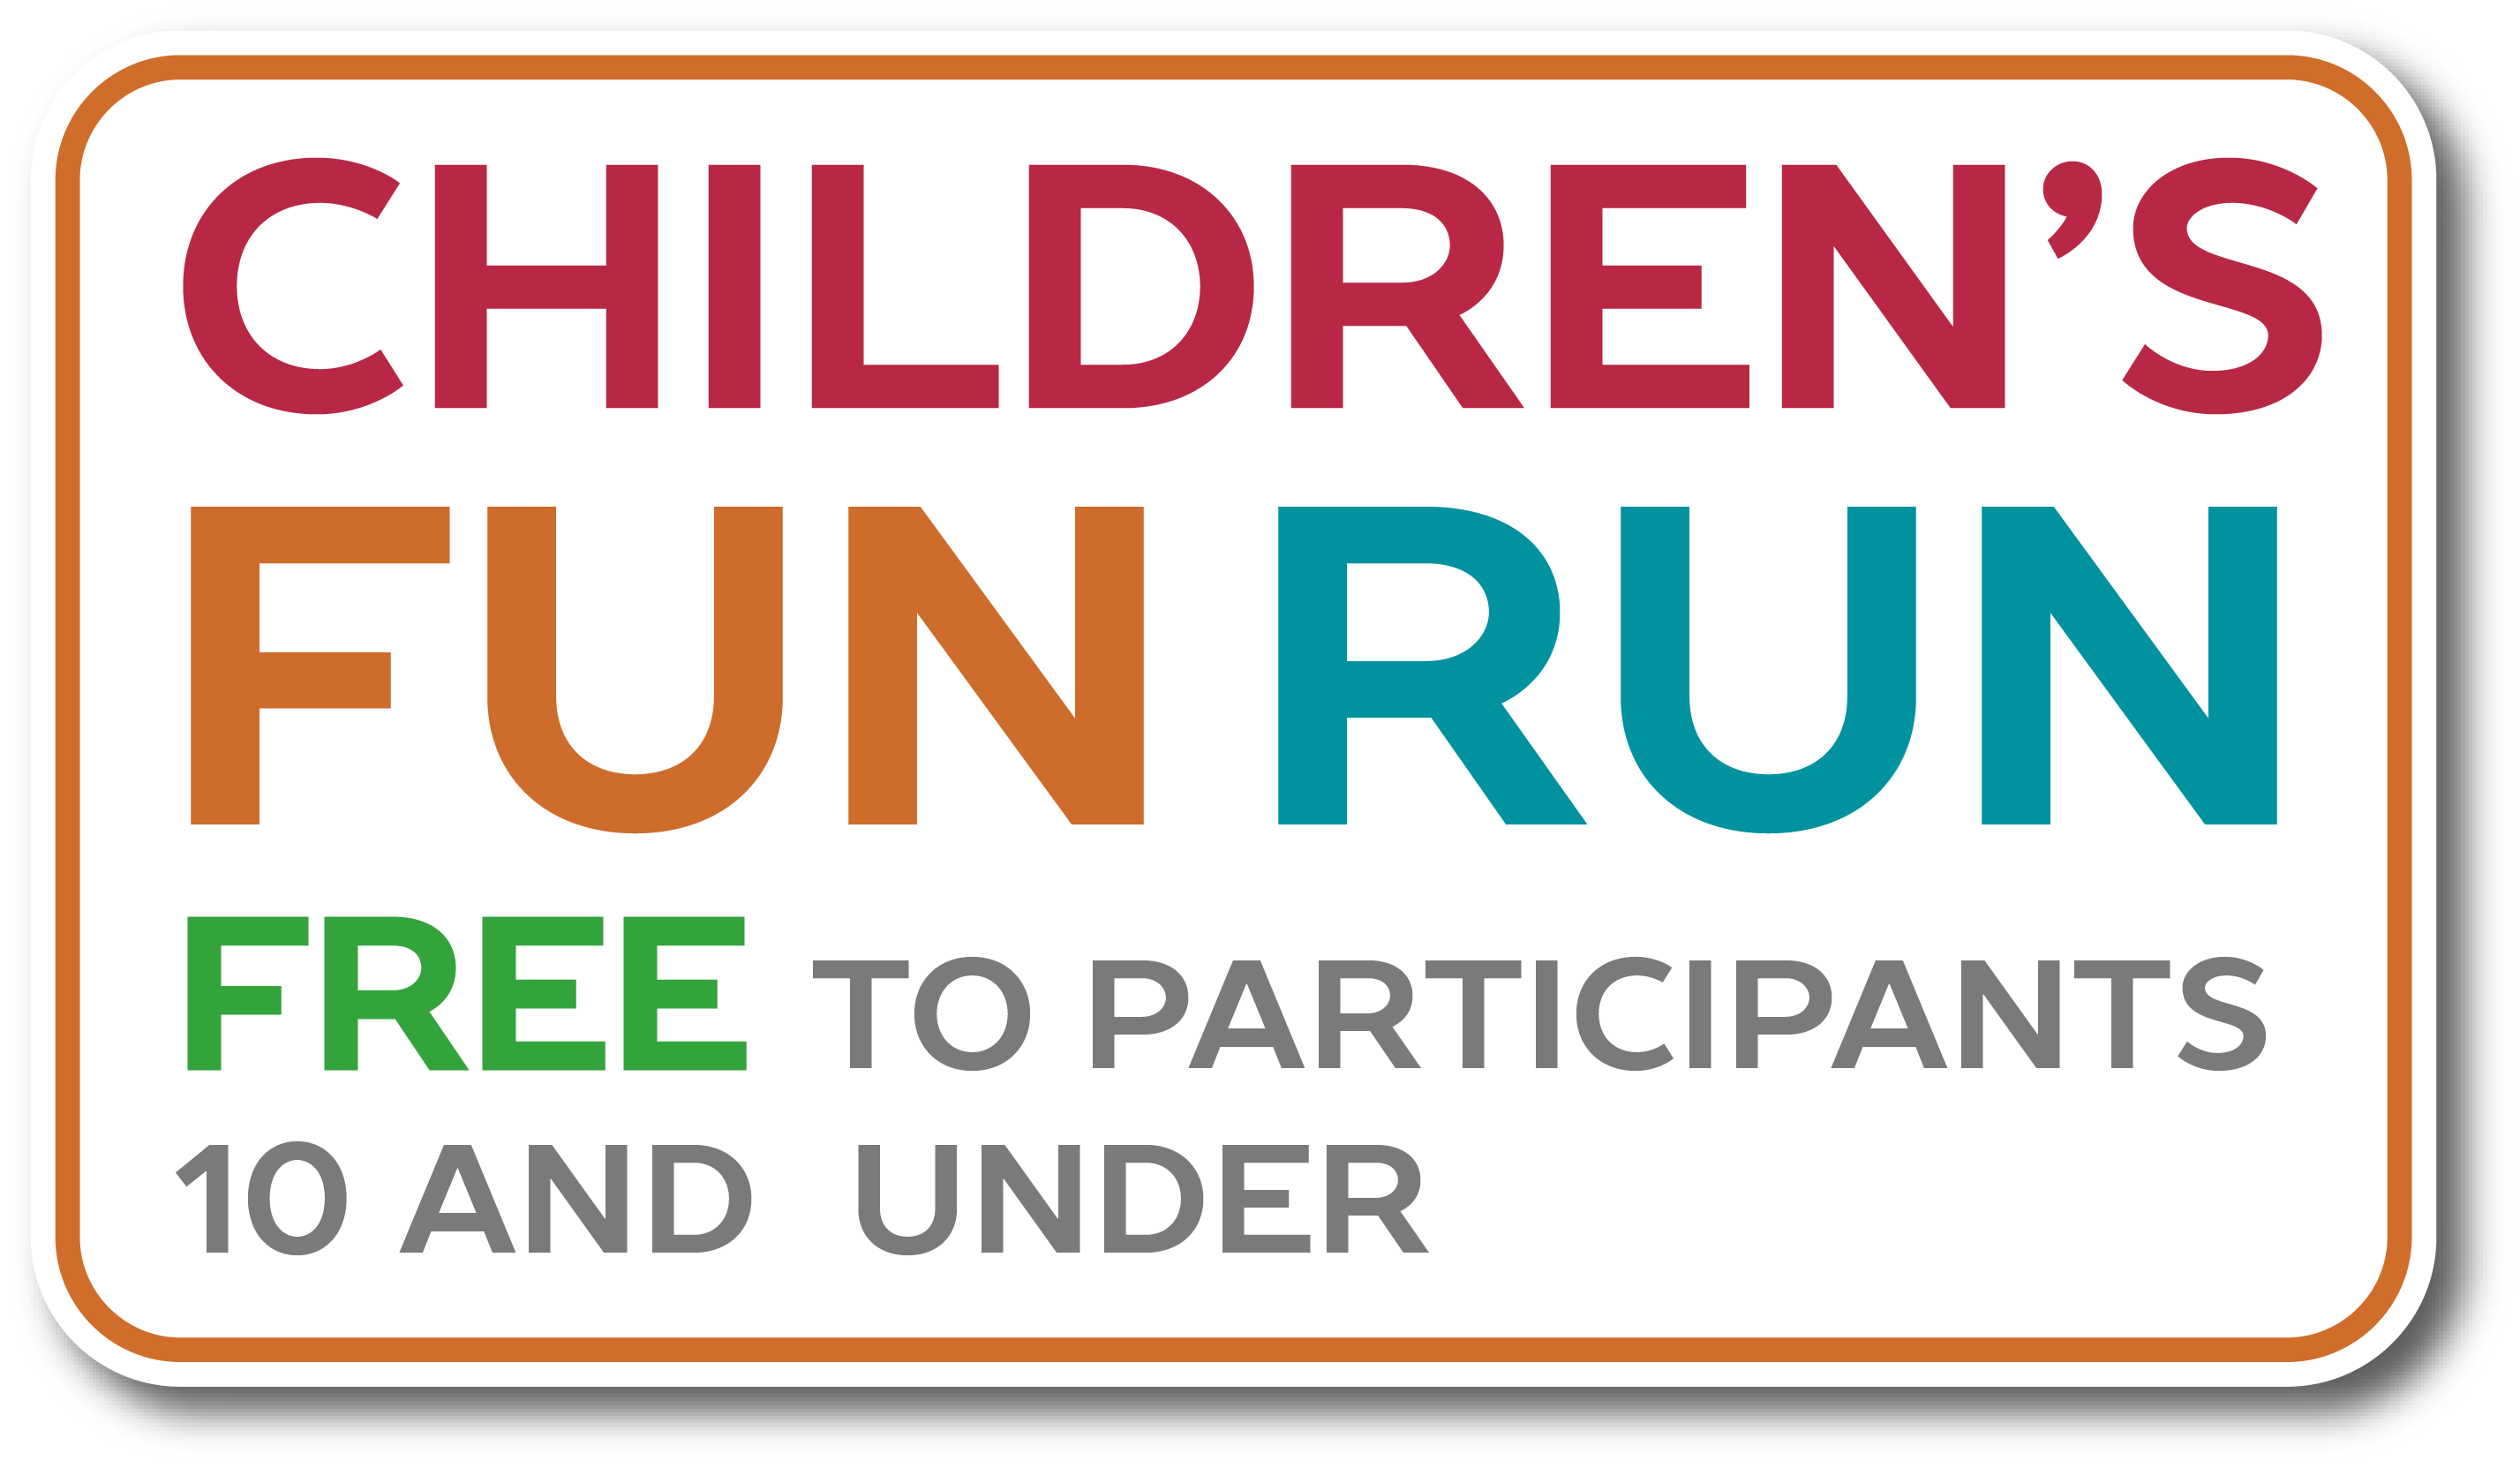 CHILDRENS FUN RUN